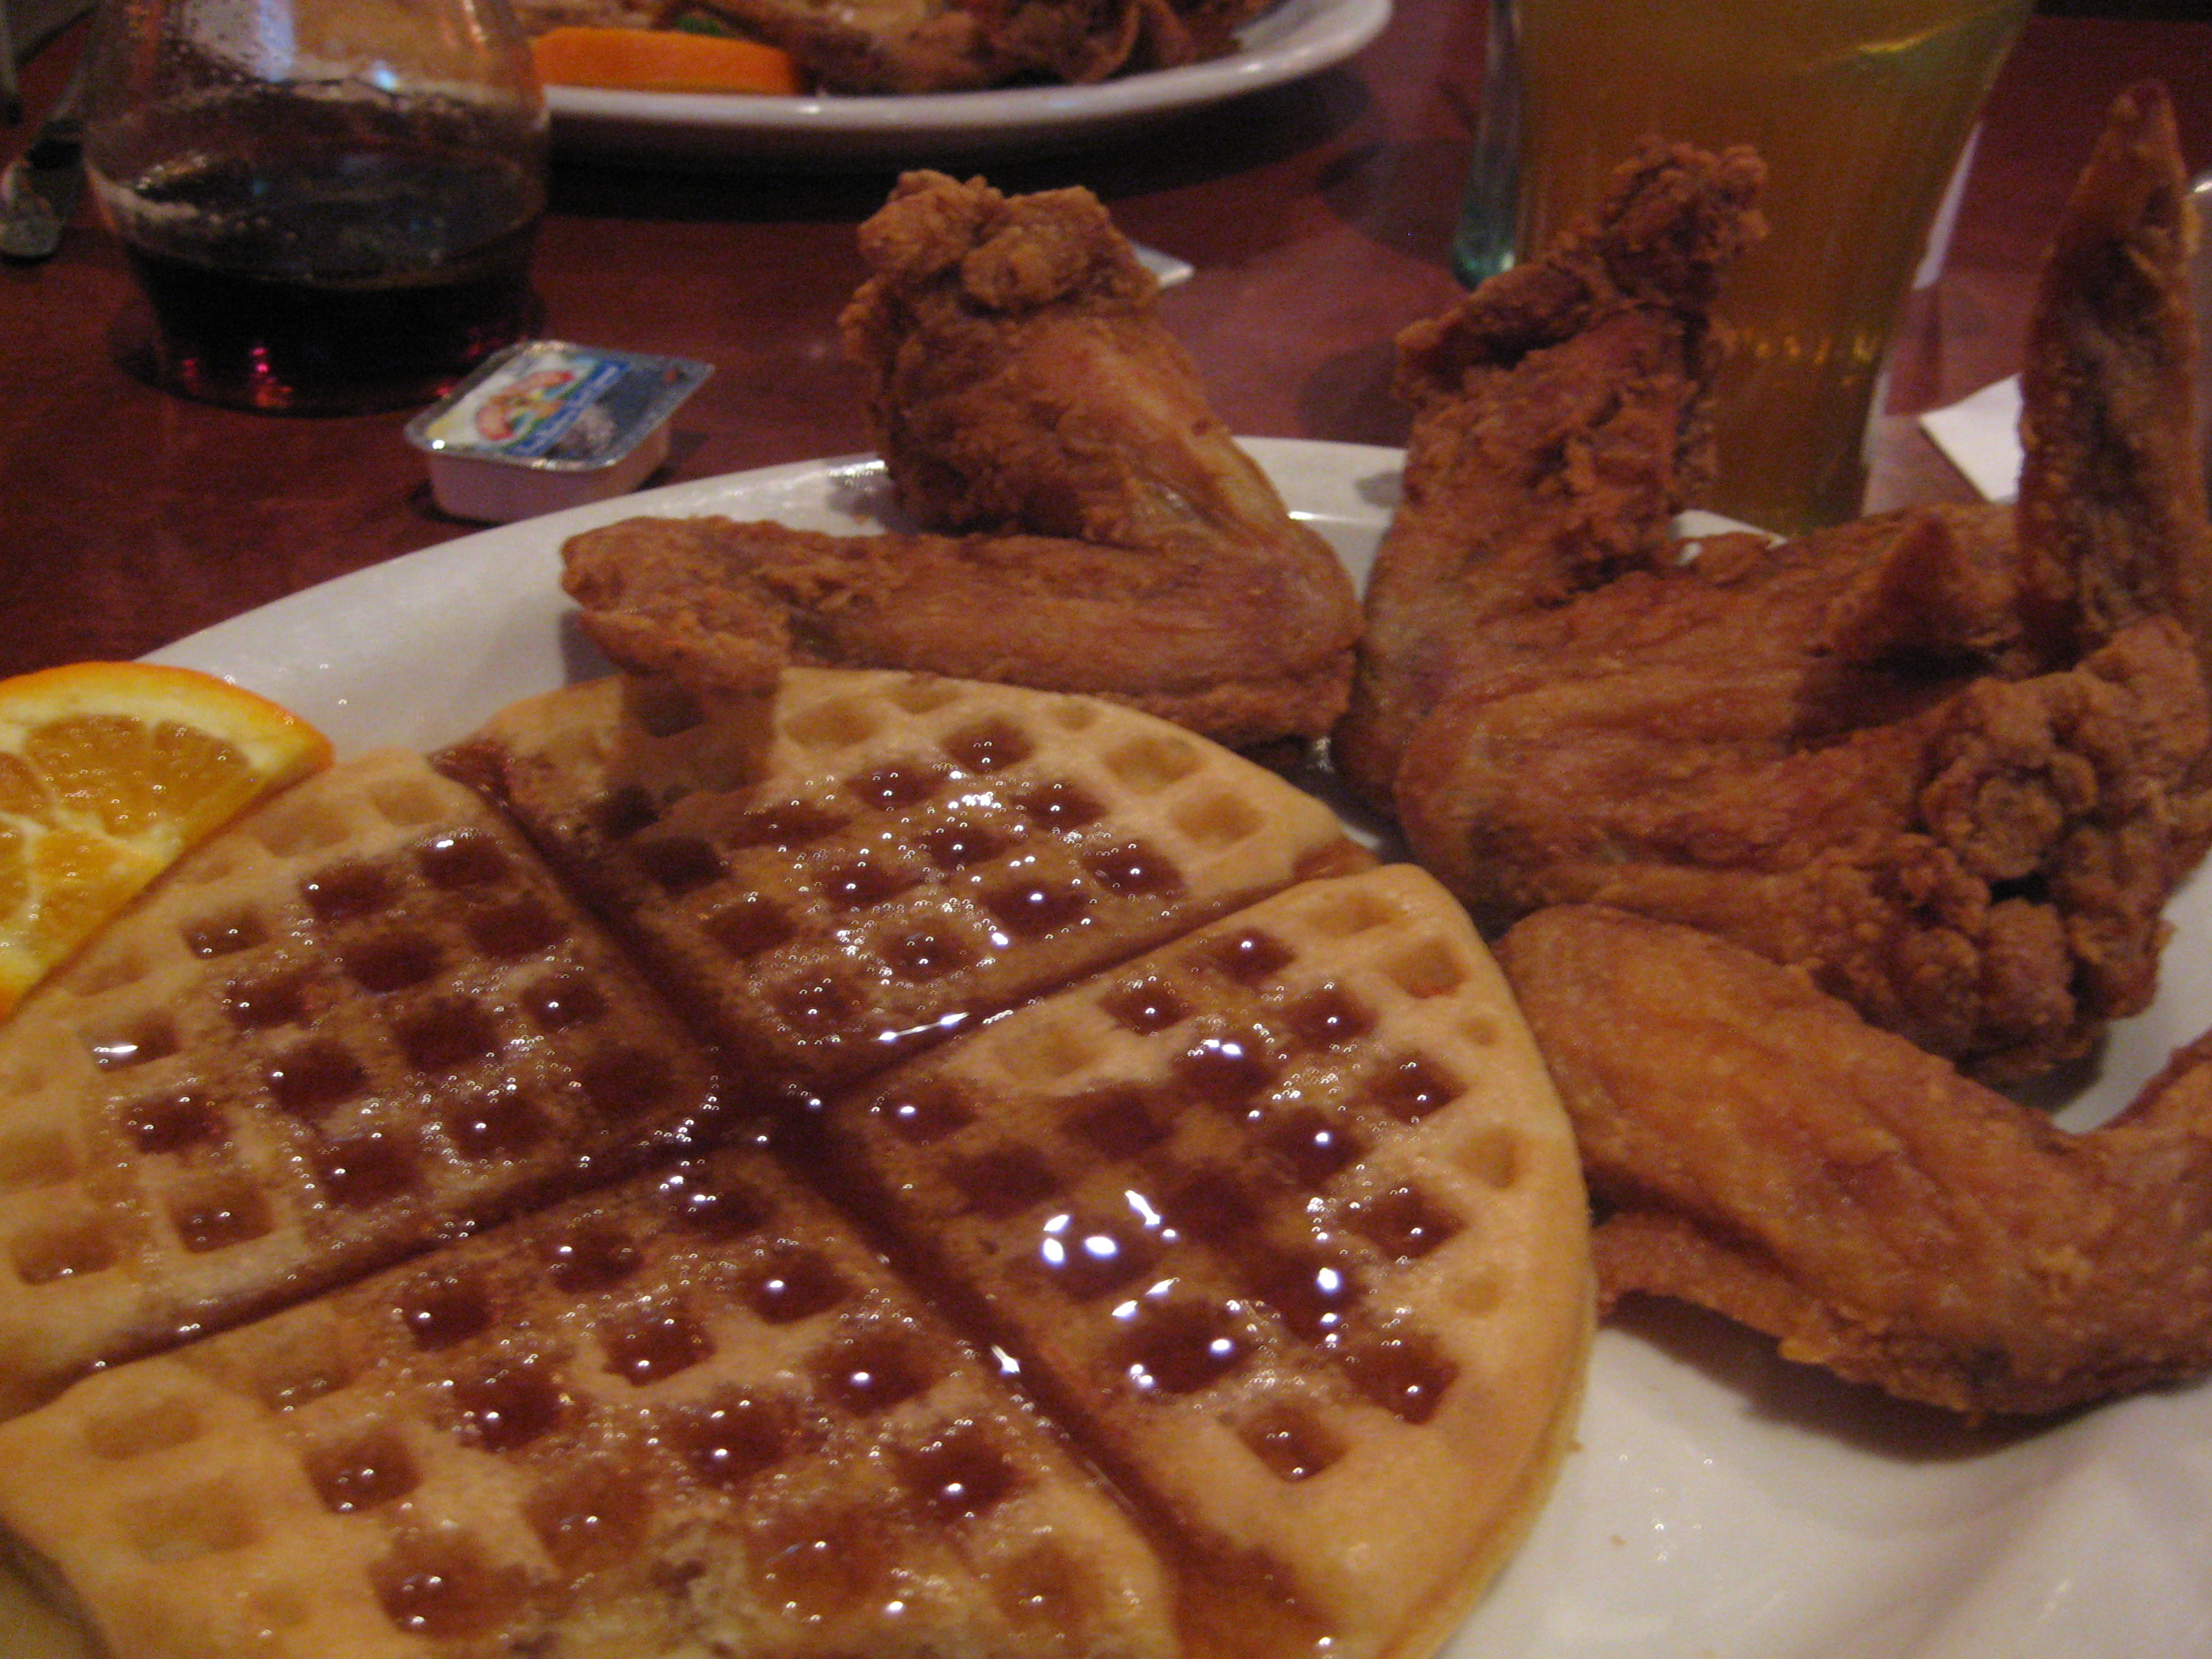 File:Chicken and Waffles.JPG - Wikimedia Commons